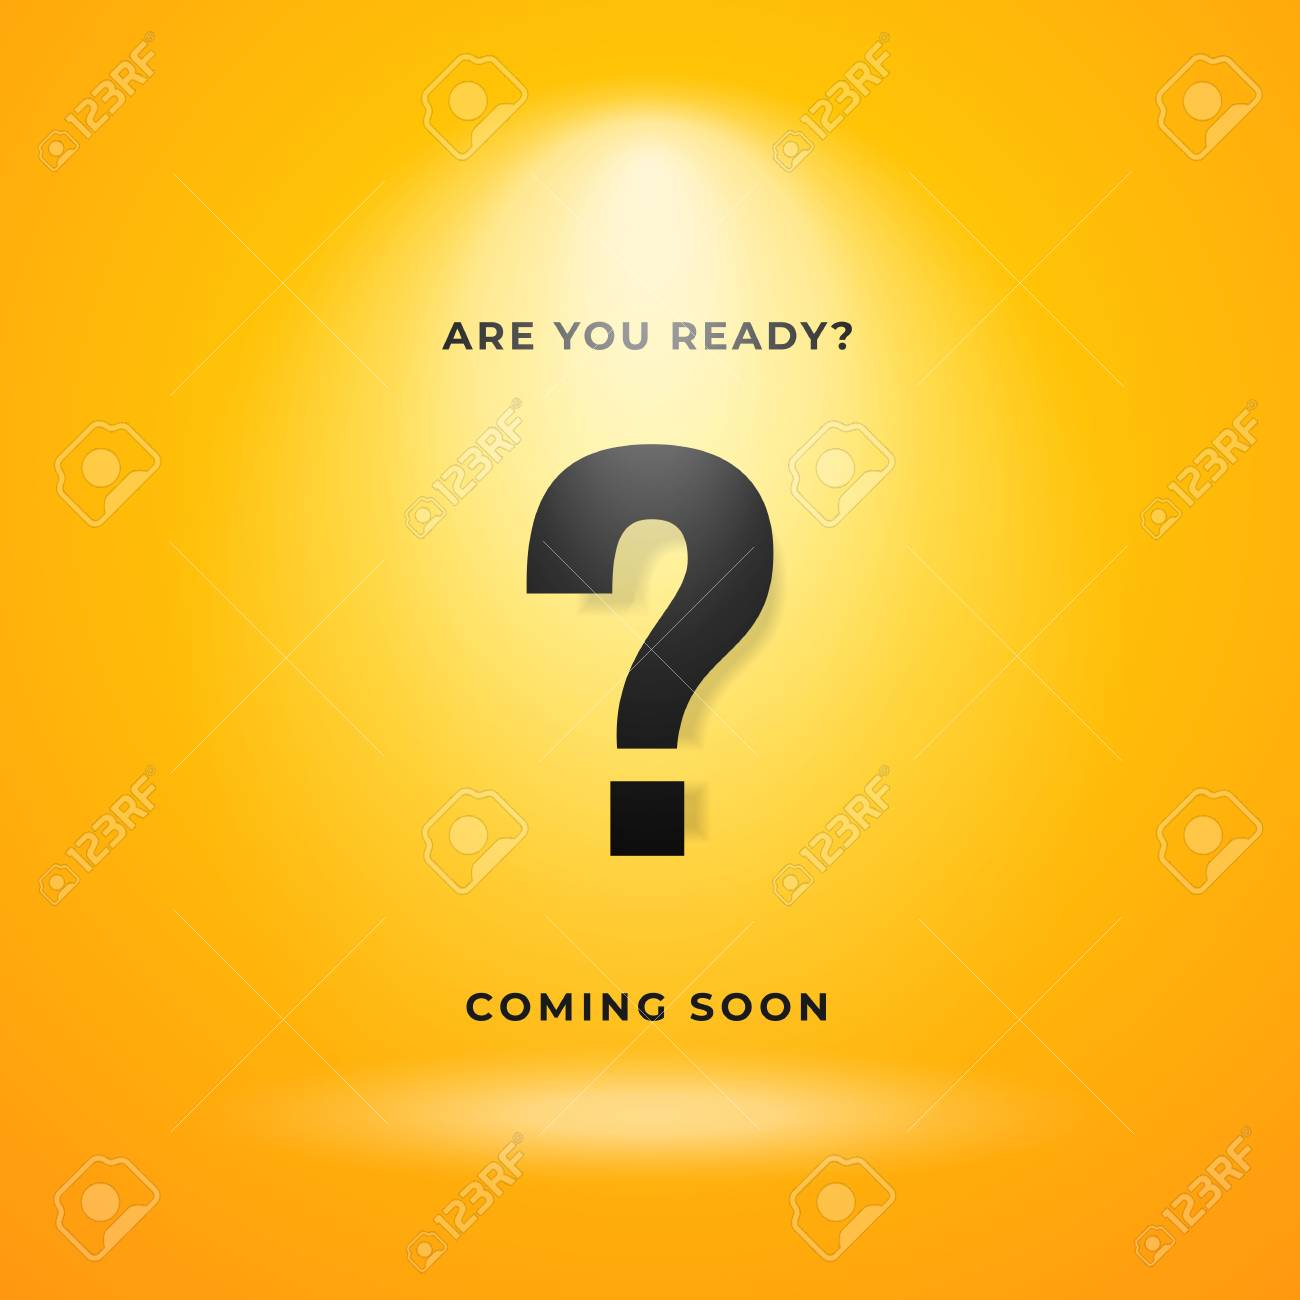 mystery item coming soon poster background yellow backdrop with